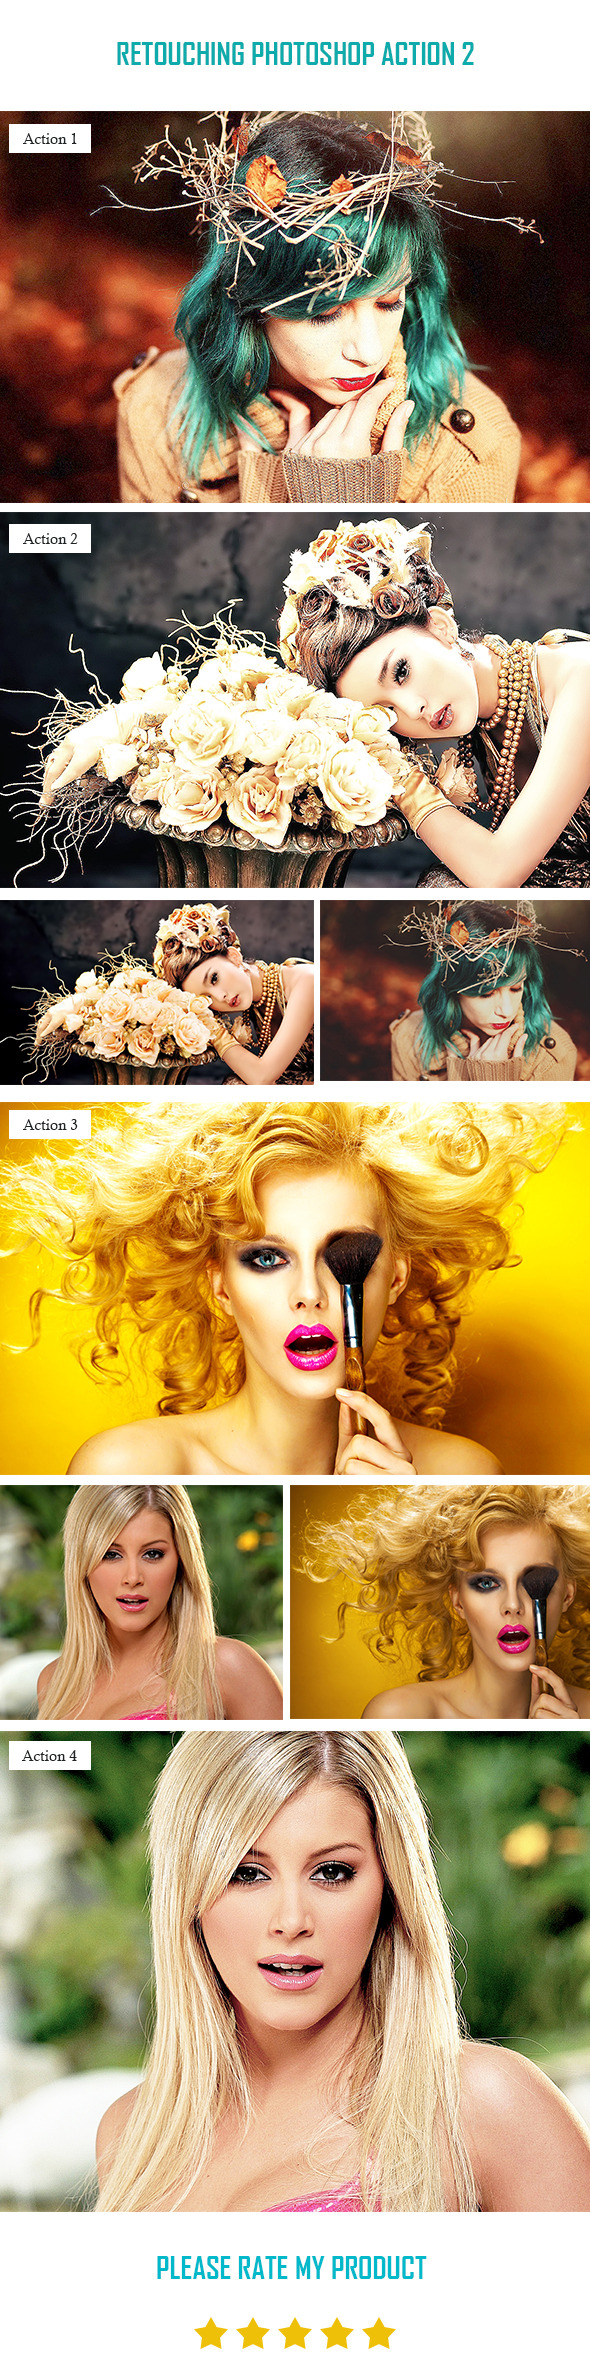 Retouching Photoshop Action 2 - Photo Effects Actions